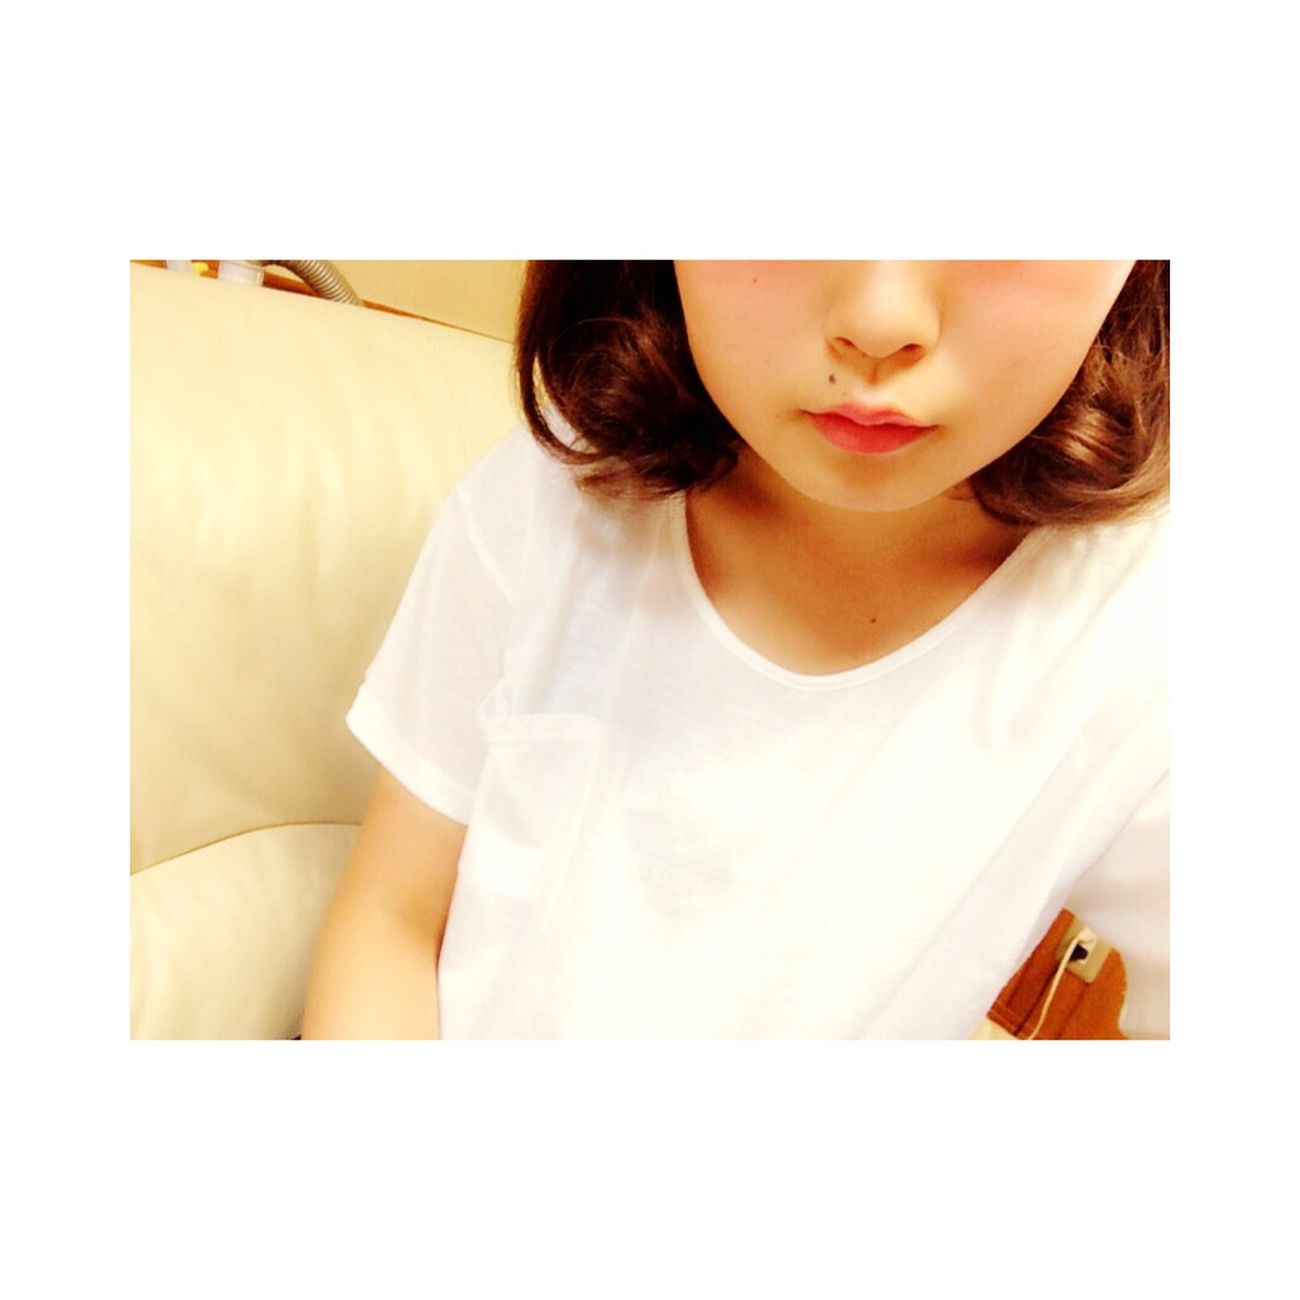 7.29 Shorthair Shortbob Bob Hair Arrenge Hairarrenge Summer Make White Woman